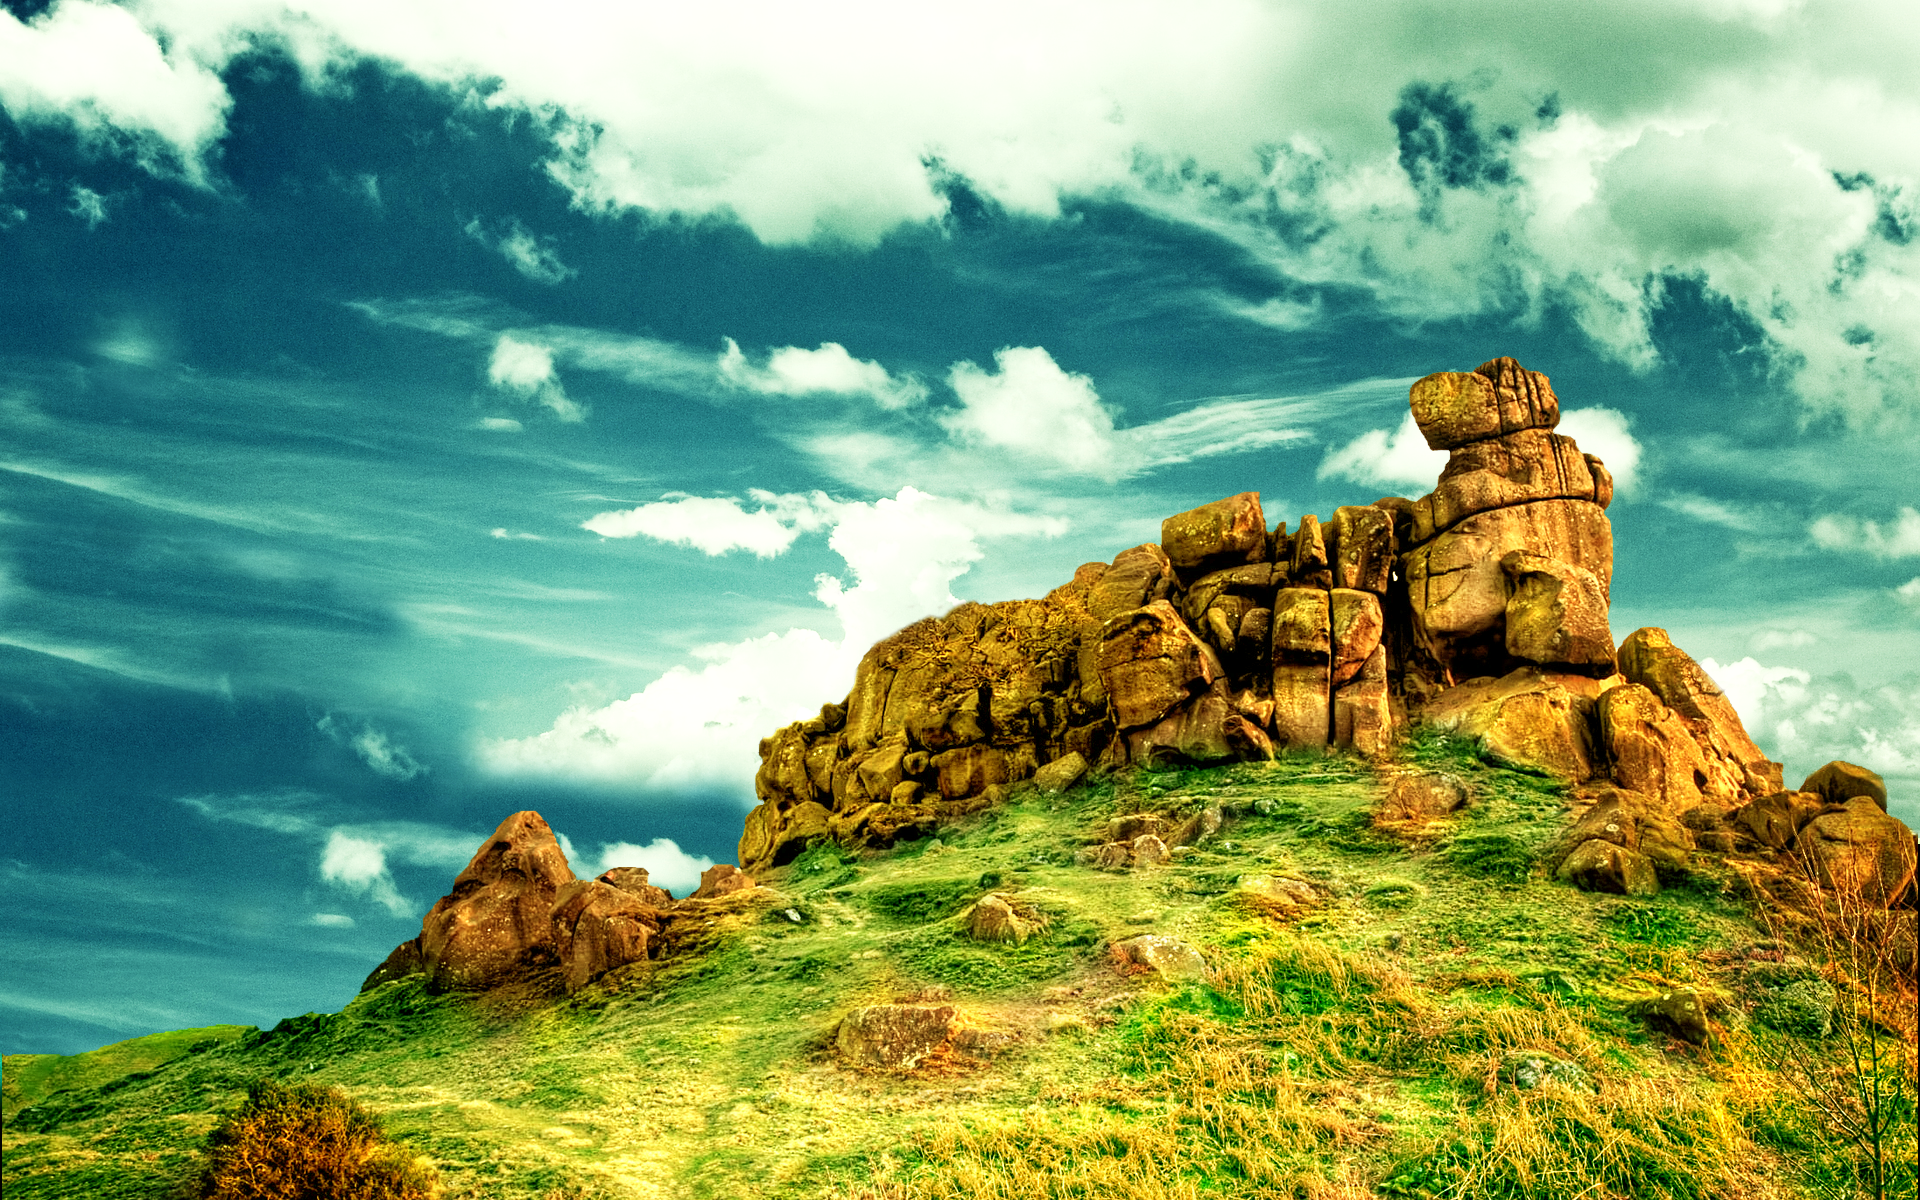 Background Images Nature Png - Summer Nature Wallpapers Mobile - Png Hd Background Natural ...